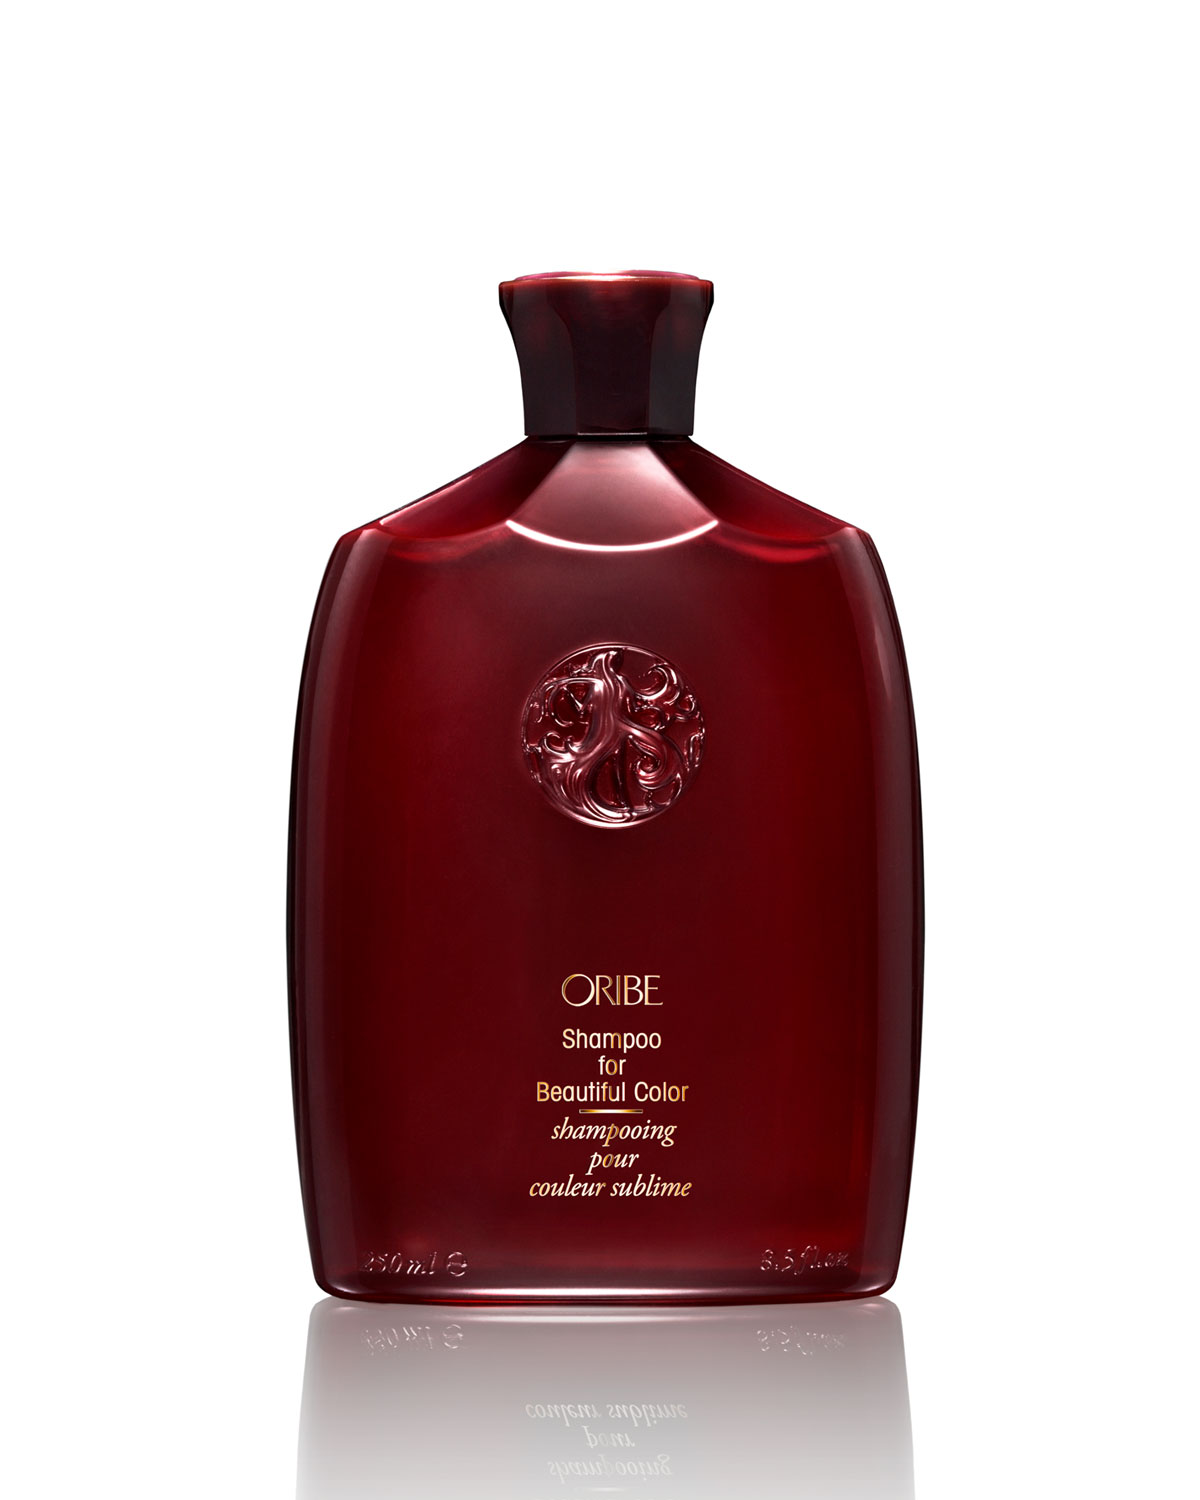 Oribe Shampoos SHAMPOO FOR BEAUTIFUL COLOR, 8.5 OZ./ 251 ML